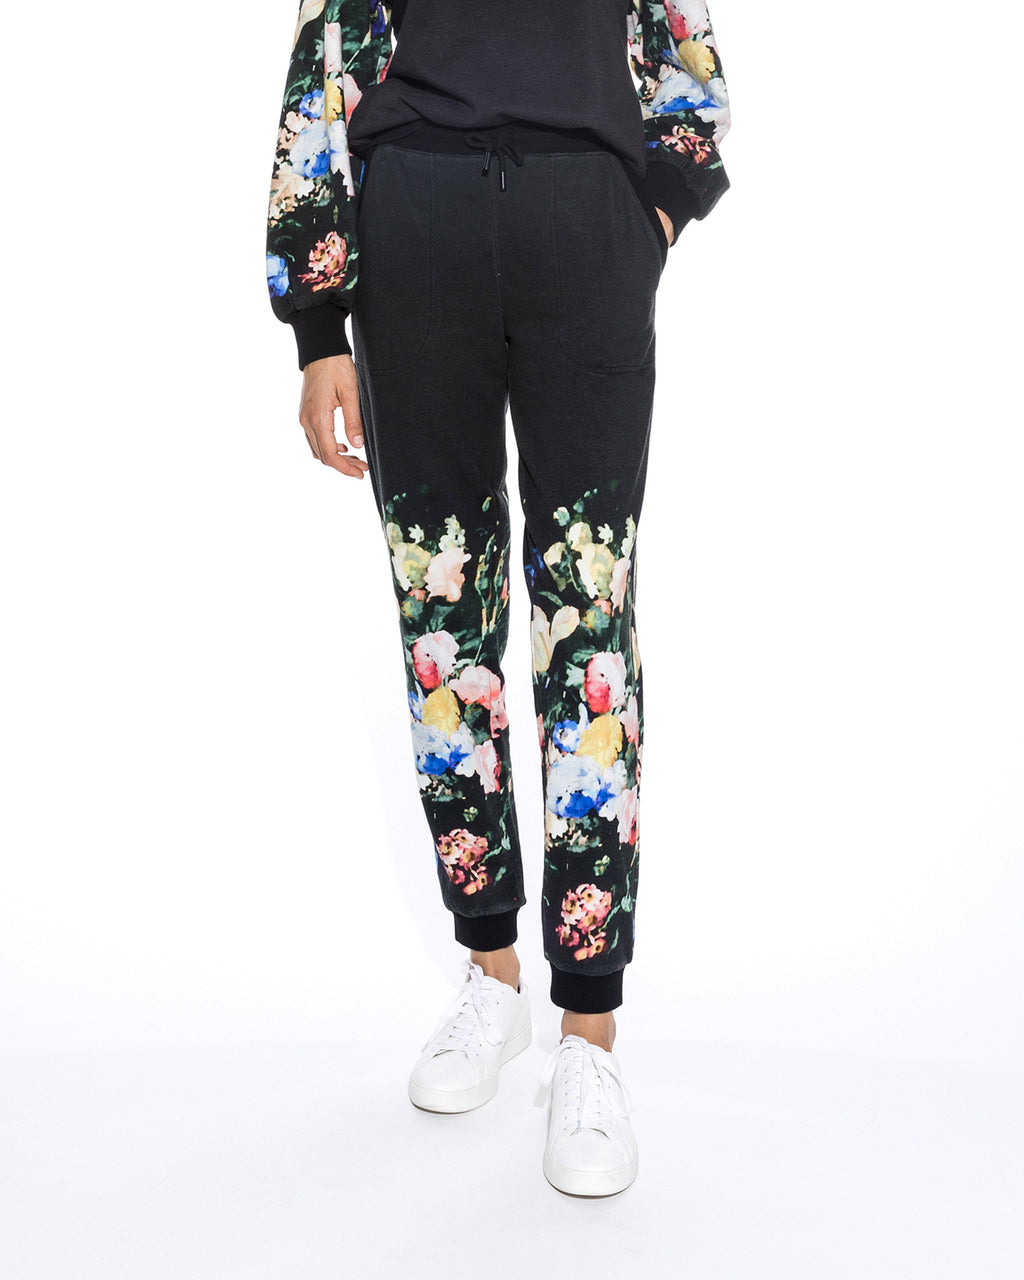 CP18587 - DUTCH STILL LIFE PRINTED JOGGER - bottoms - pants - Not your basic joggers. This classic silhouette is upgraded with our new dutch still life print for a chic and feminine touch. Crafted from 100% cotton, these pants are perfect for cozying up at home. Add 1 line break Stylist tip: Pair with the matching sweatshirt for a complete look.